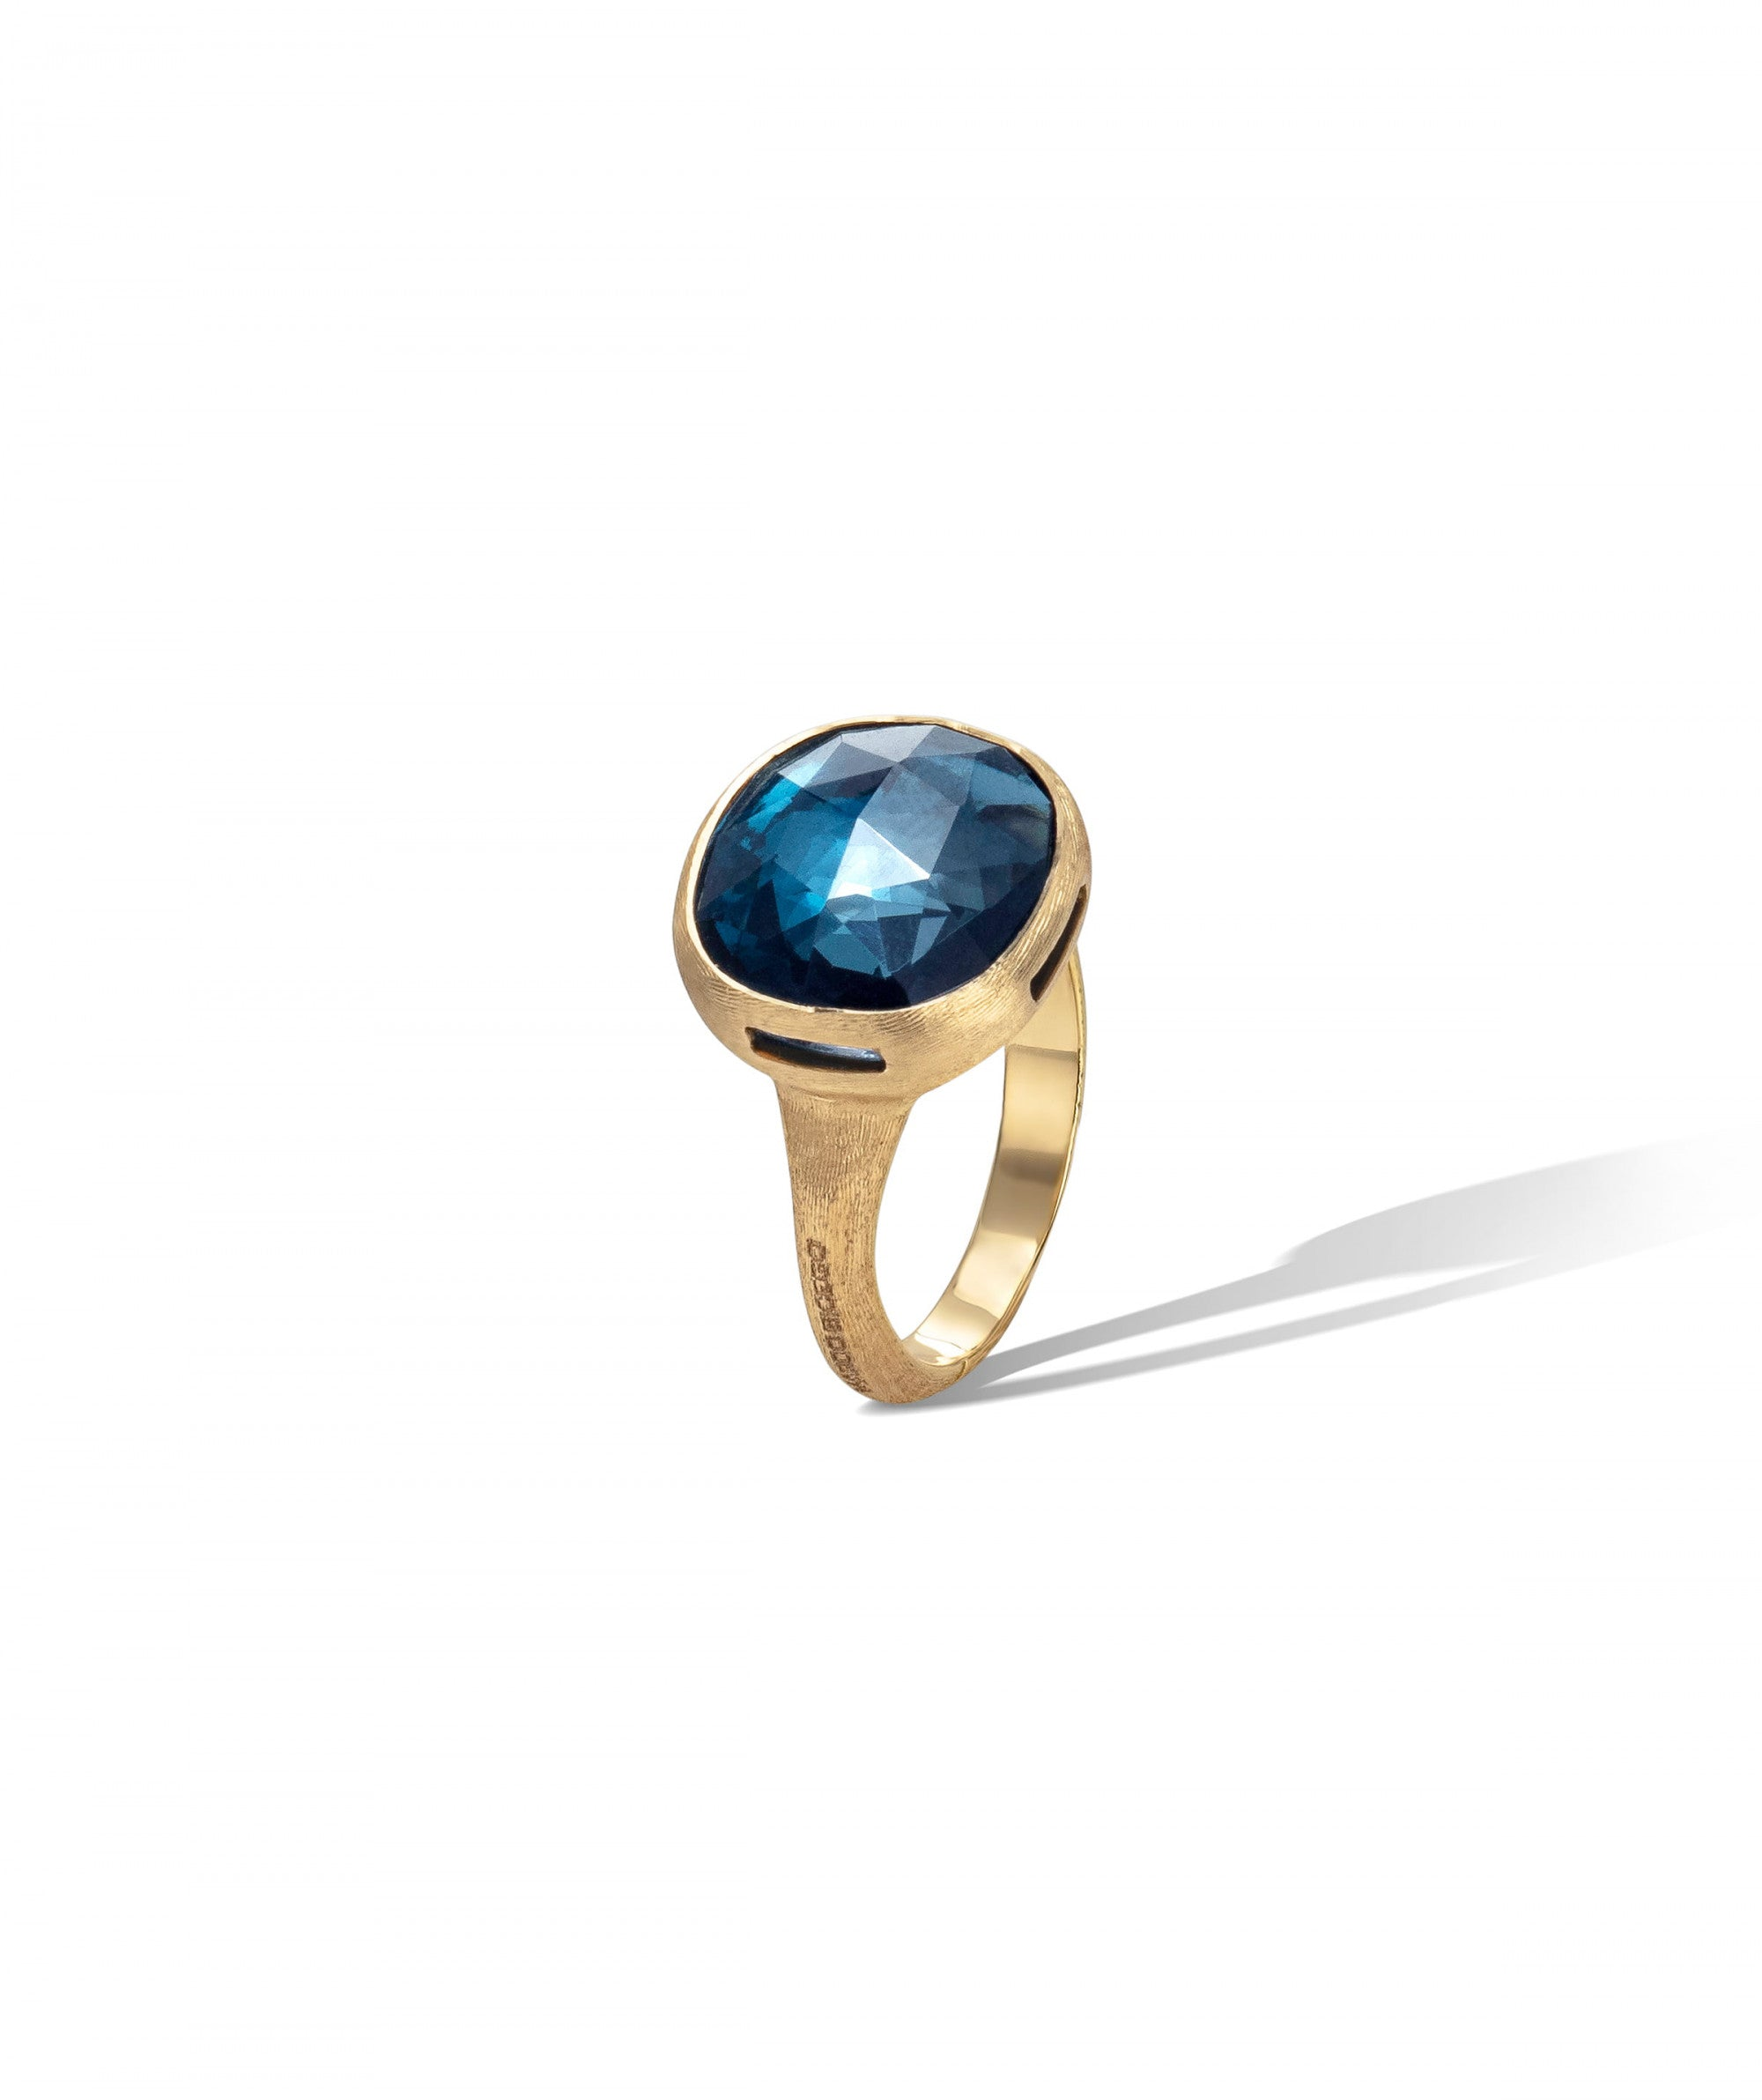 Jaipur Colour Ring in 18k Yellow Gold with London Blue Topaz Large - Orsini Jewellers NZ